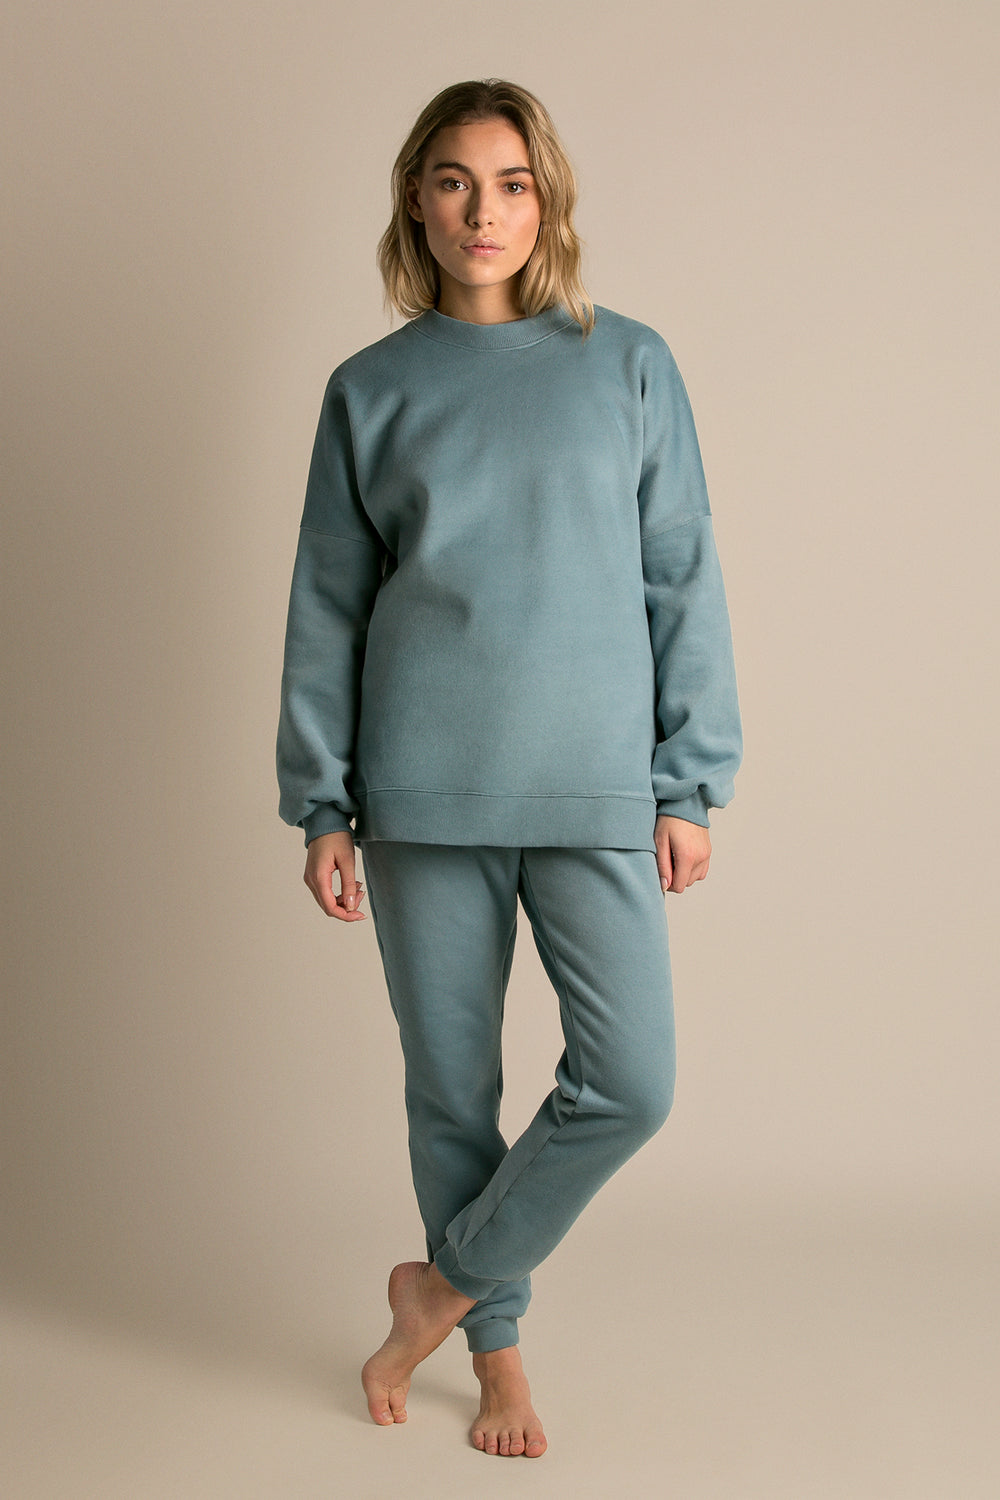 Lazy Sunday Sweatshirt - Fleece Aqua